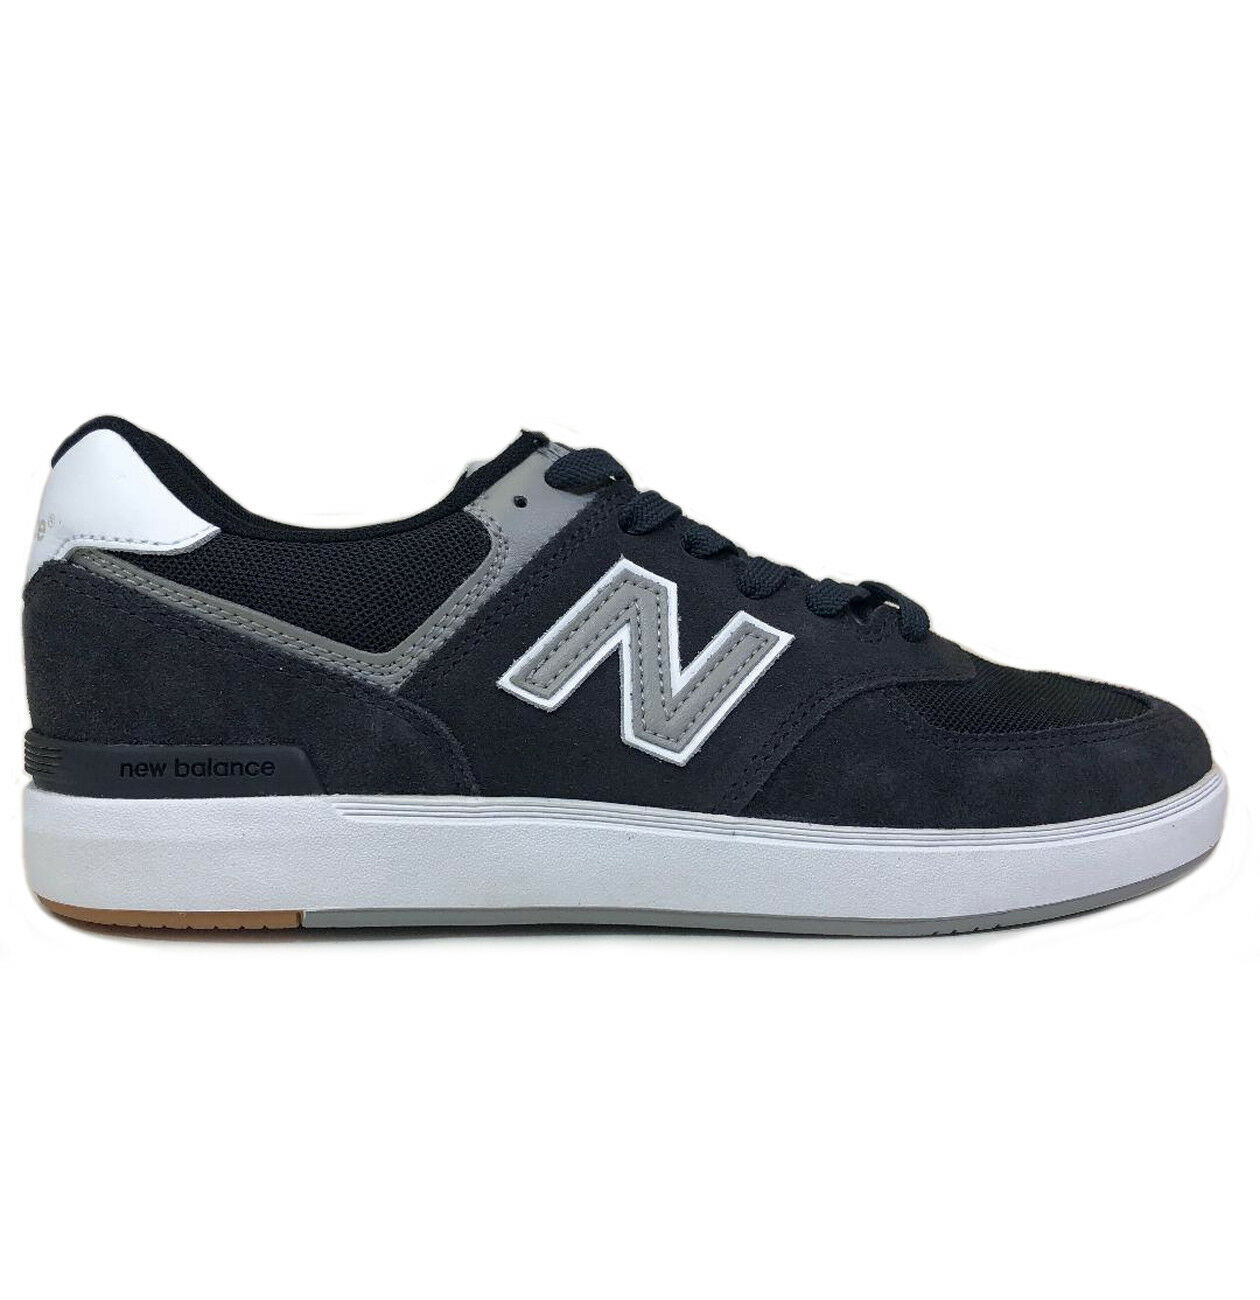 New Balance AM574 Navy Suede shoes